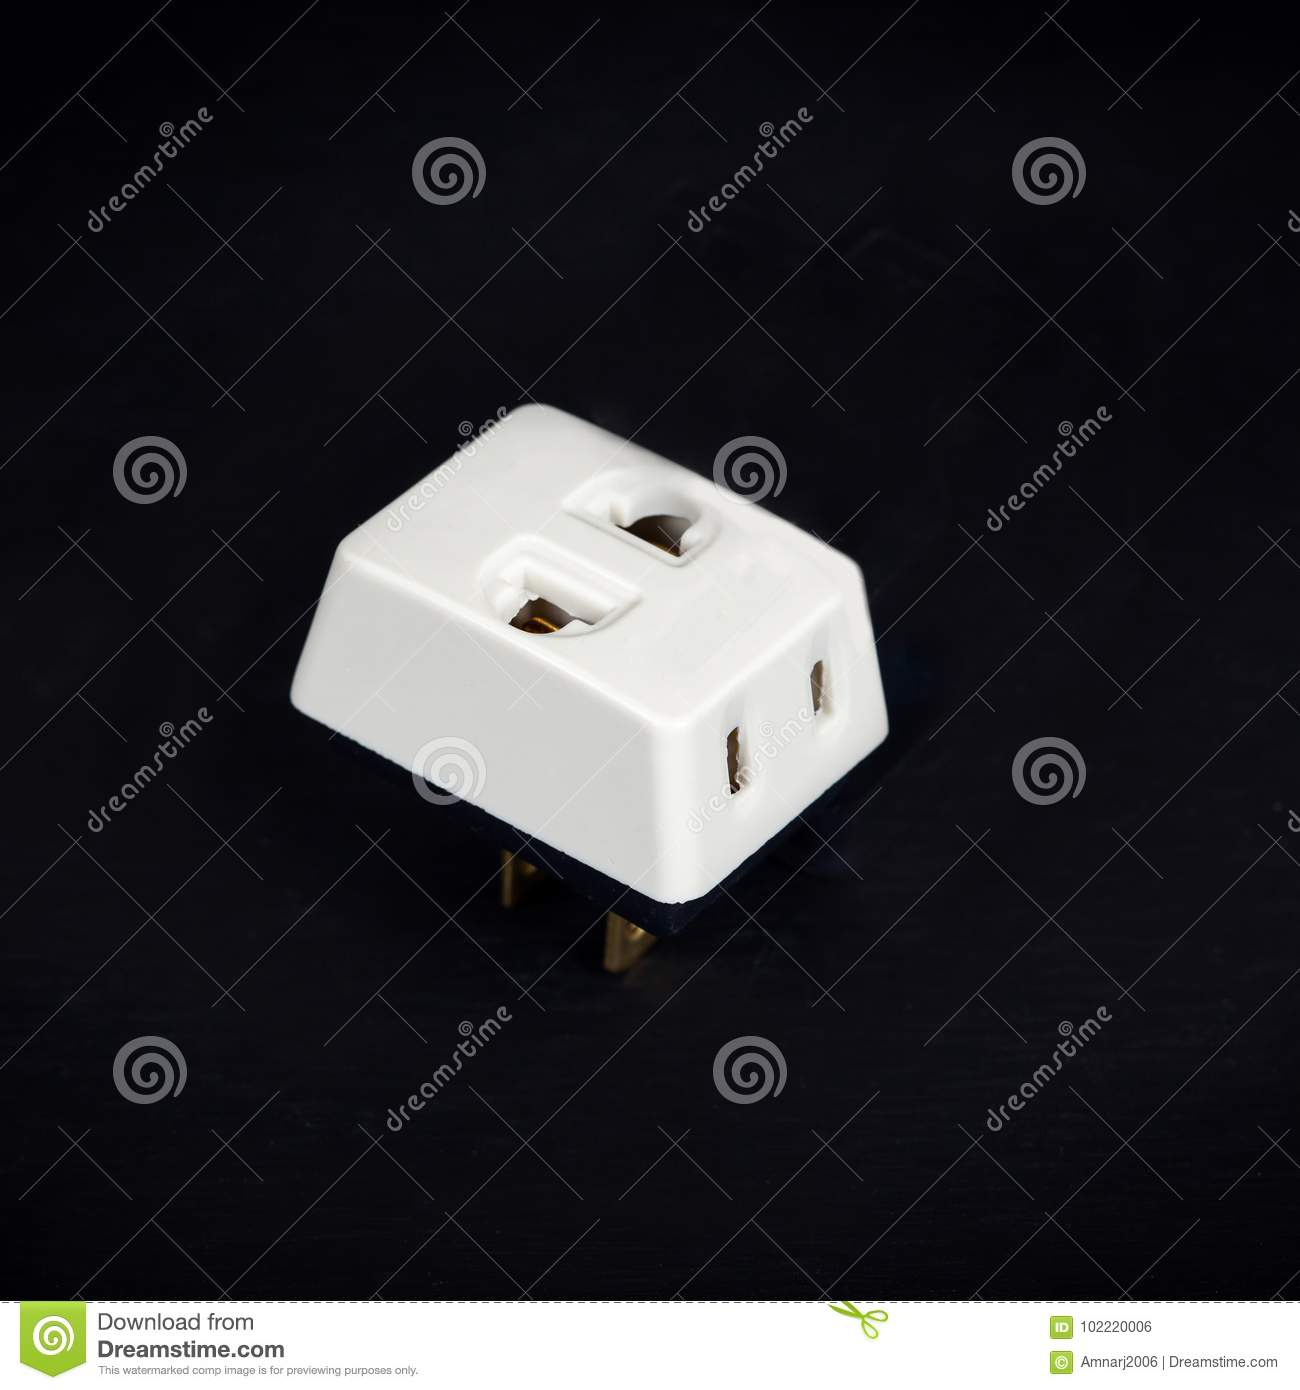 Three Way Plug For Home Electric Stock Photo - Image of object ...